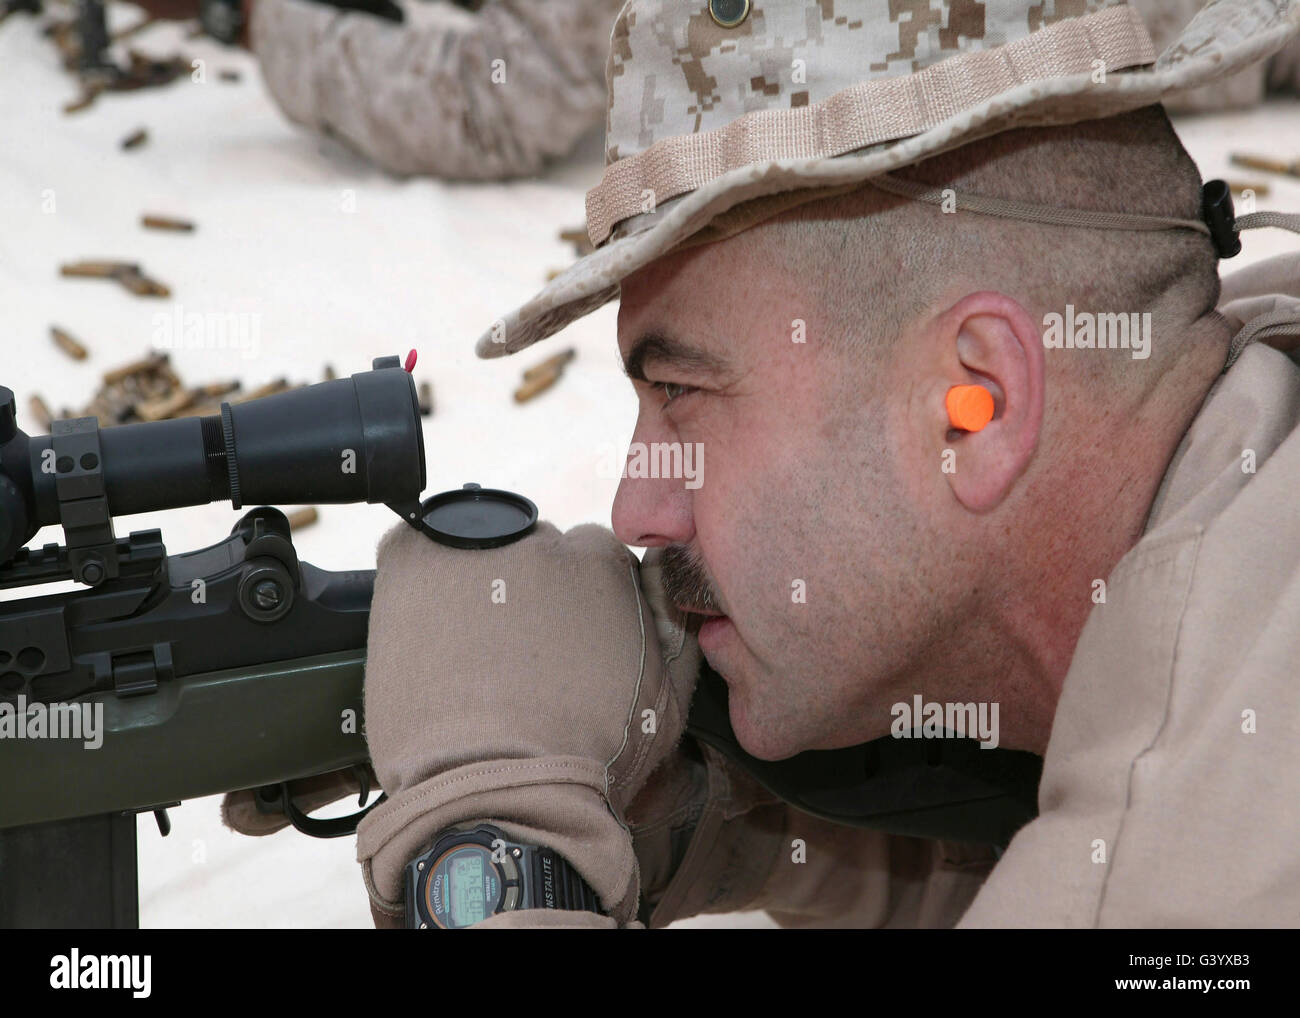 Officer sights in on the target with a Designated Marksmanship Rifle. - Stock Image